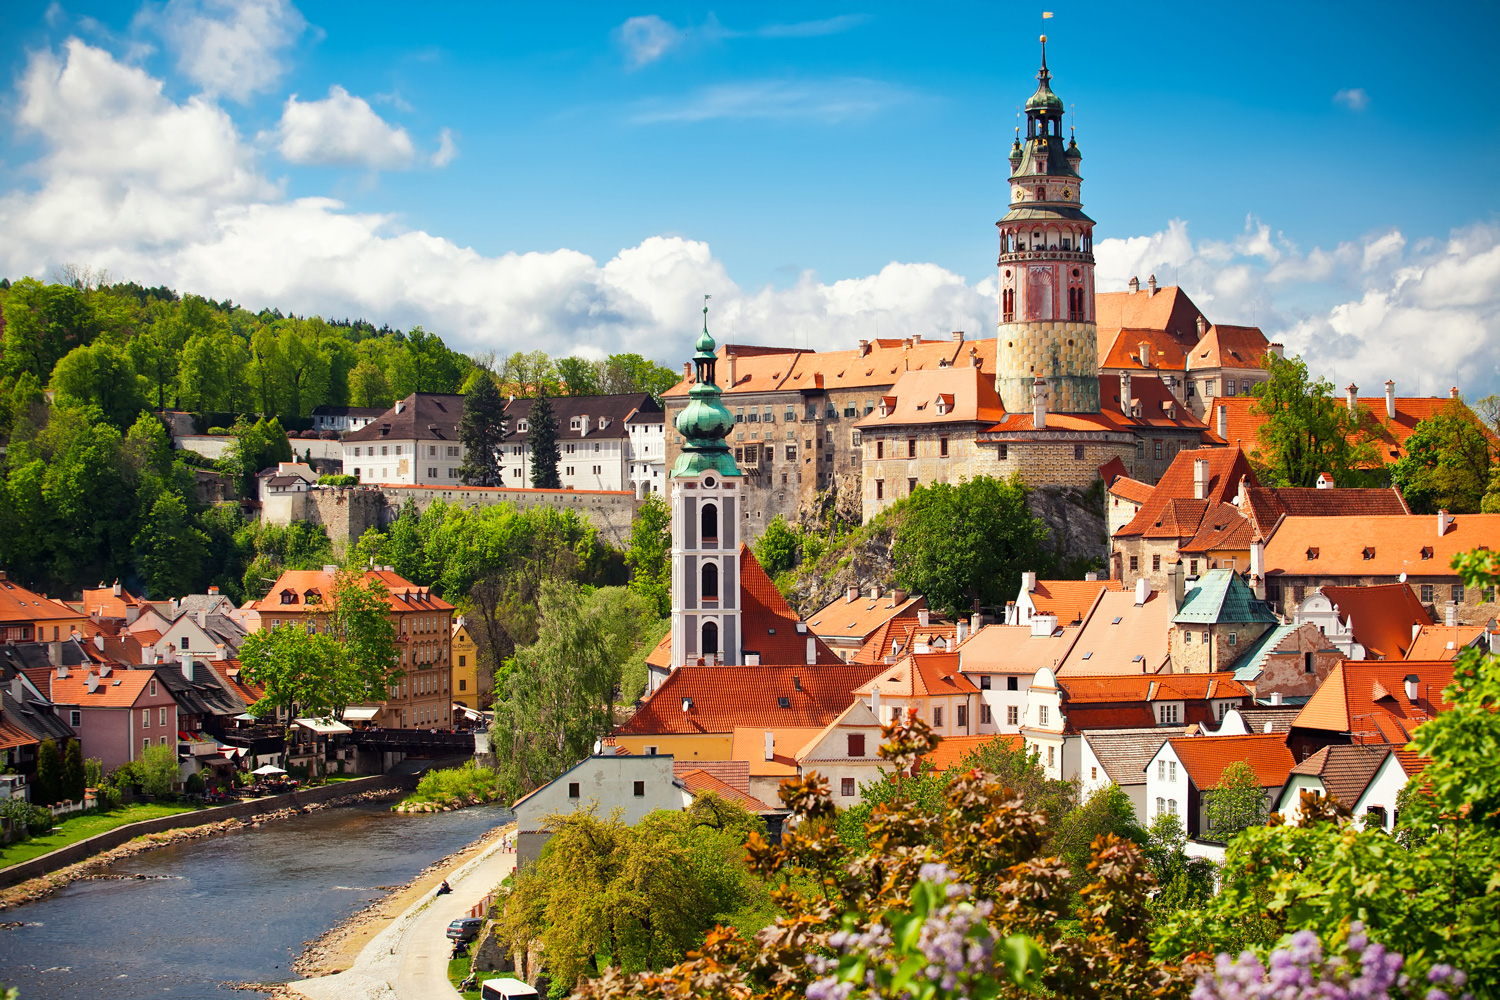 Beautiful view of the church and castle in Cesky Krumlov, Czech Republic